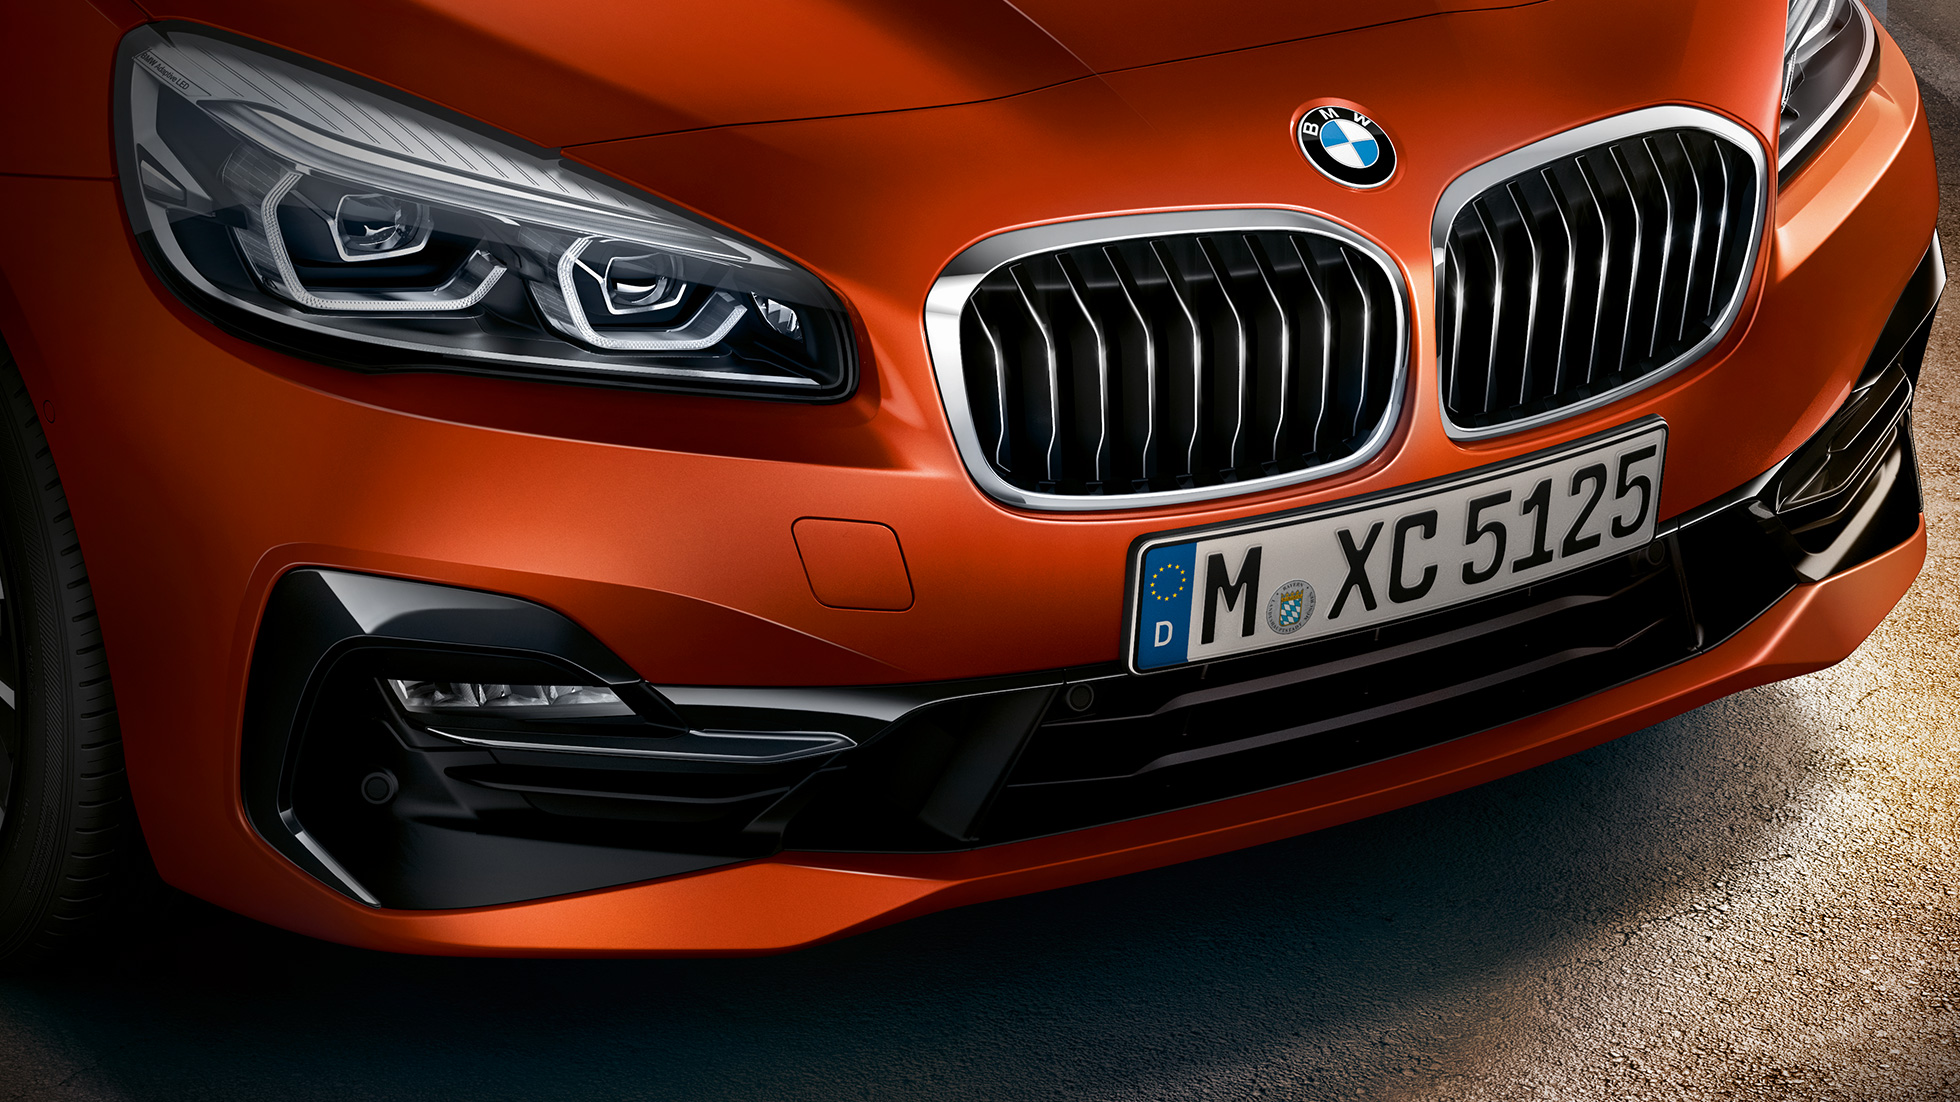 Doubles naseaux de la BMW Série 2 Active Tourer F45 restylage 2018 Sunset Orange metallic vue en gros plan avant